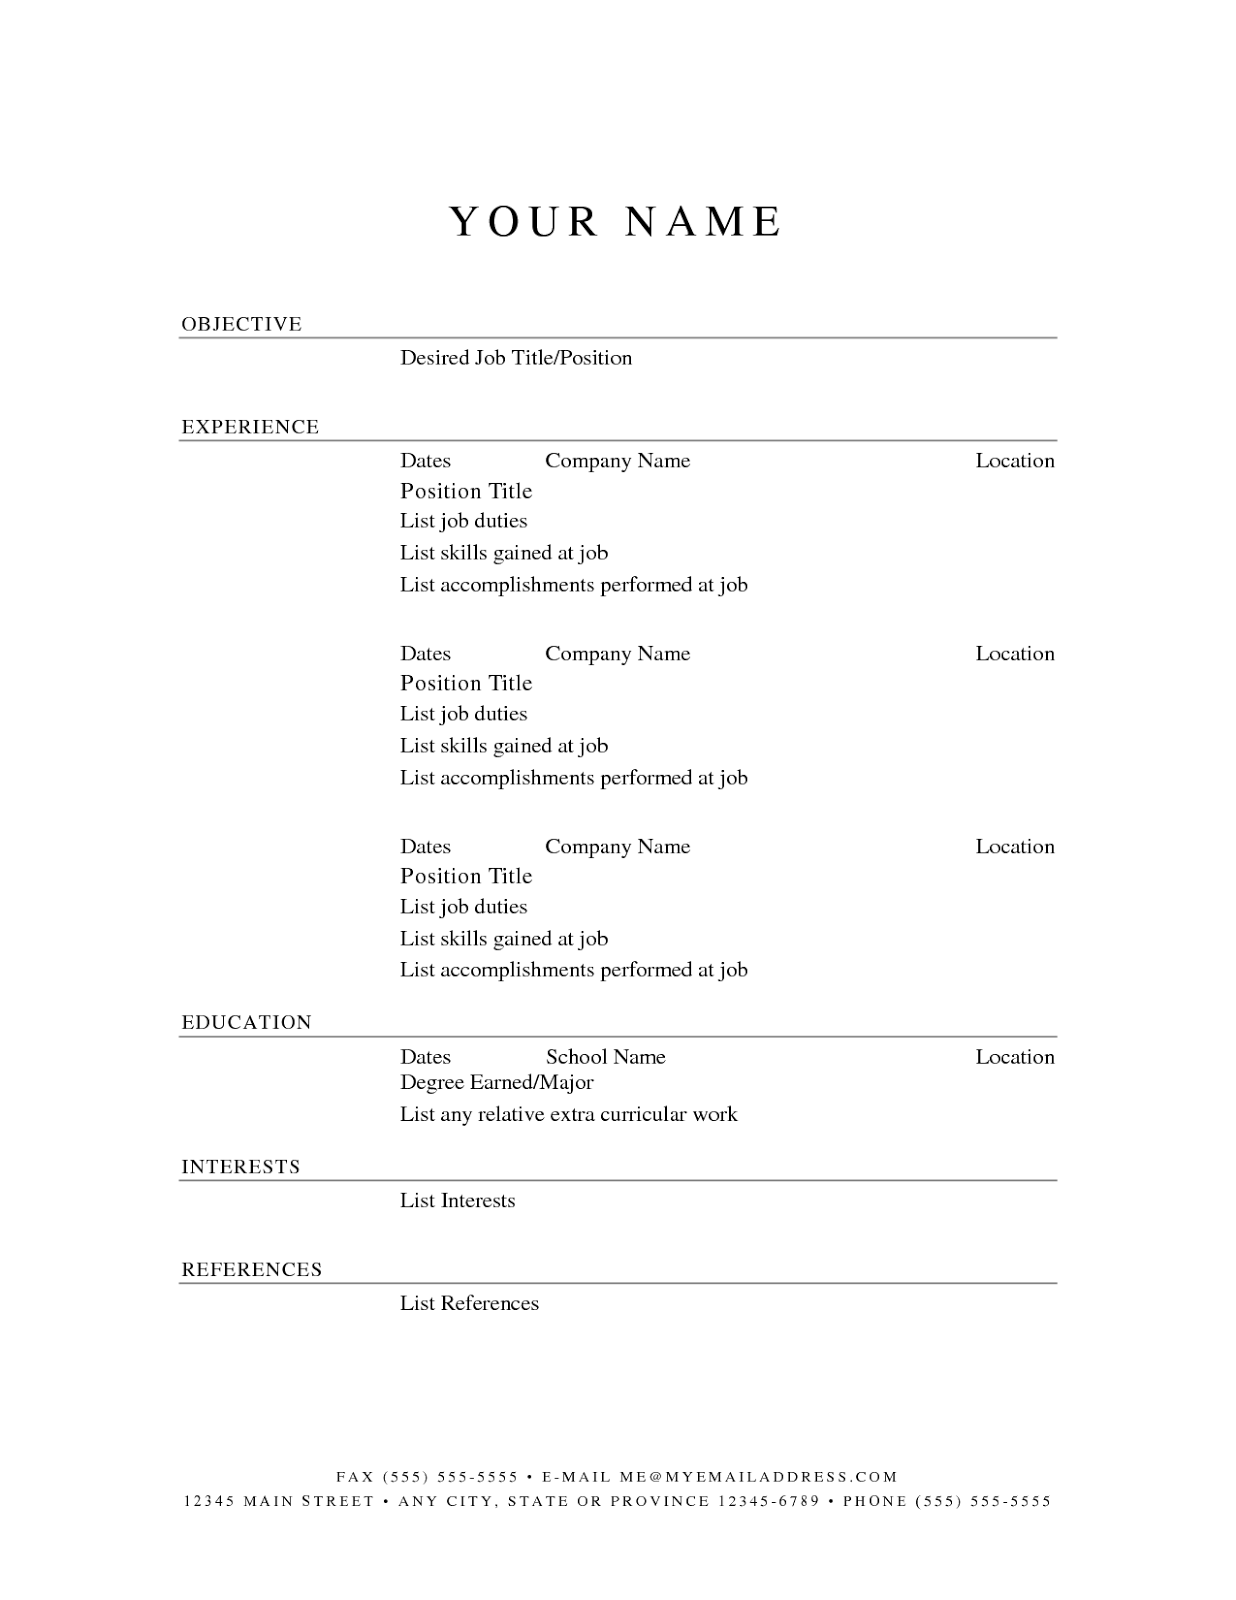 10 blank basic resume templates best template job resume template job resume examples job resume template word job resume template